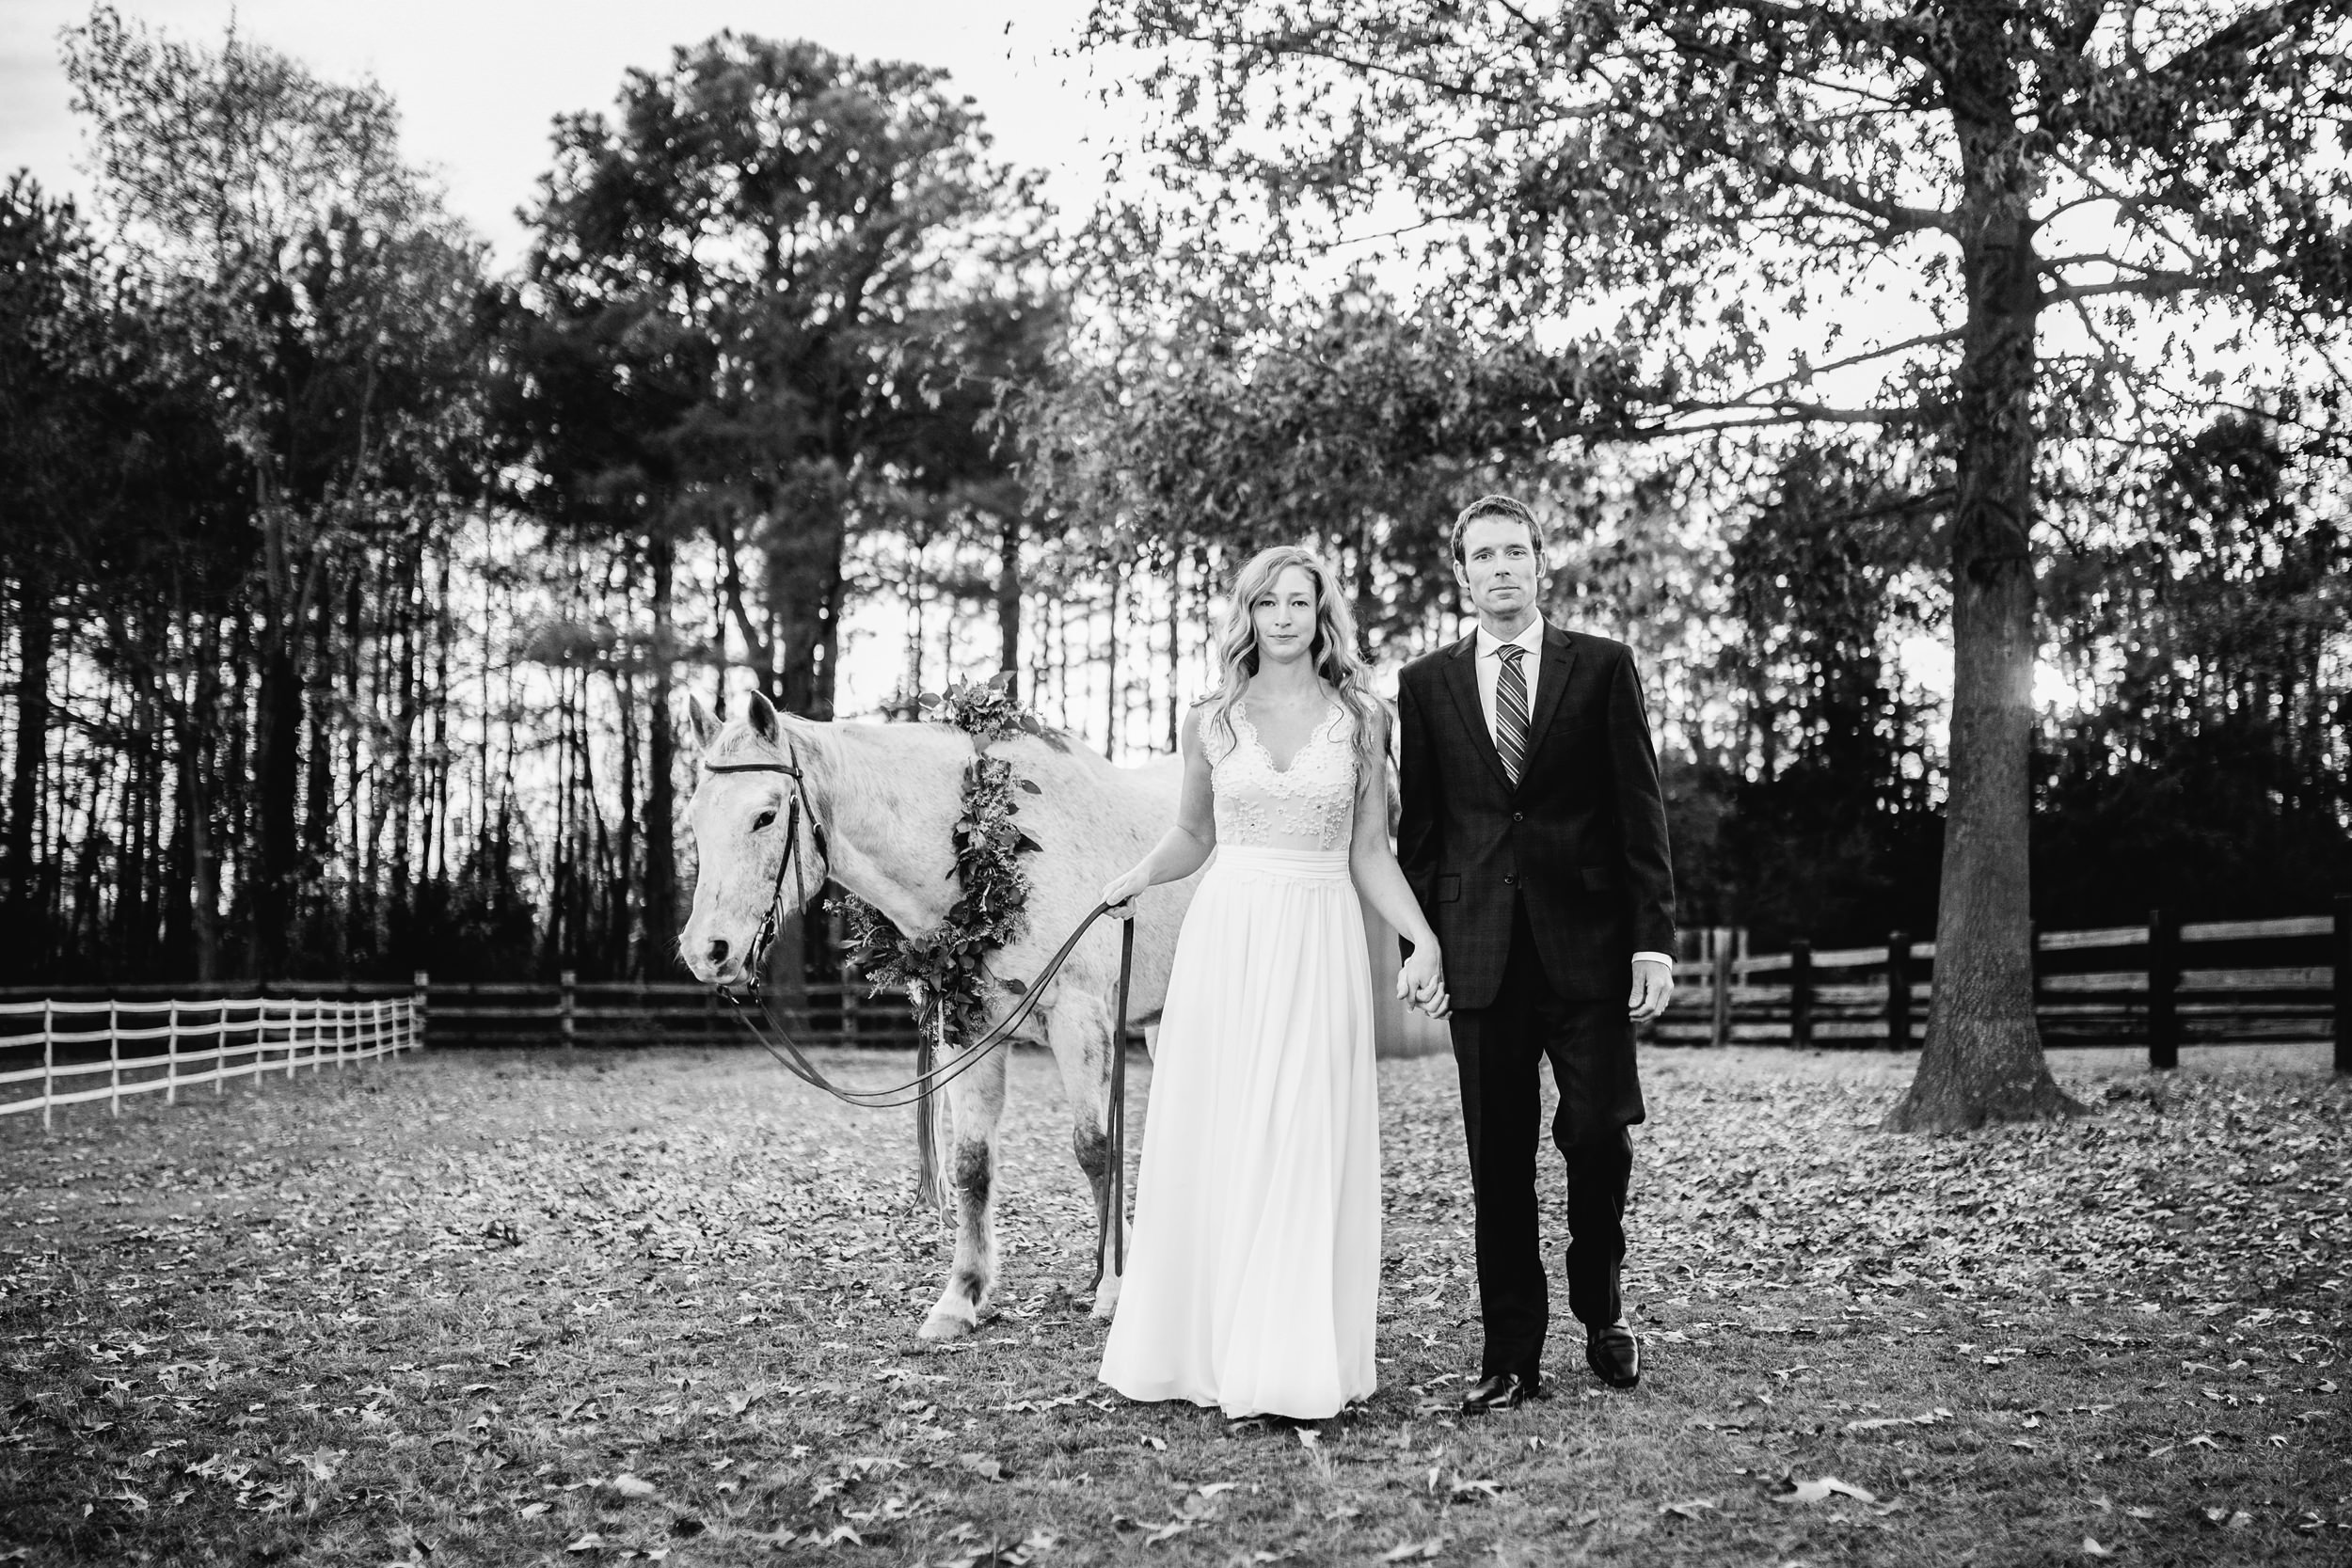 011-Mechanicsville_Wedding_Photography